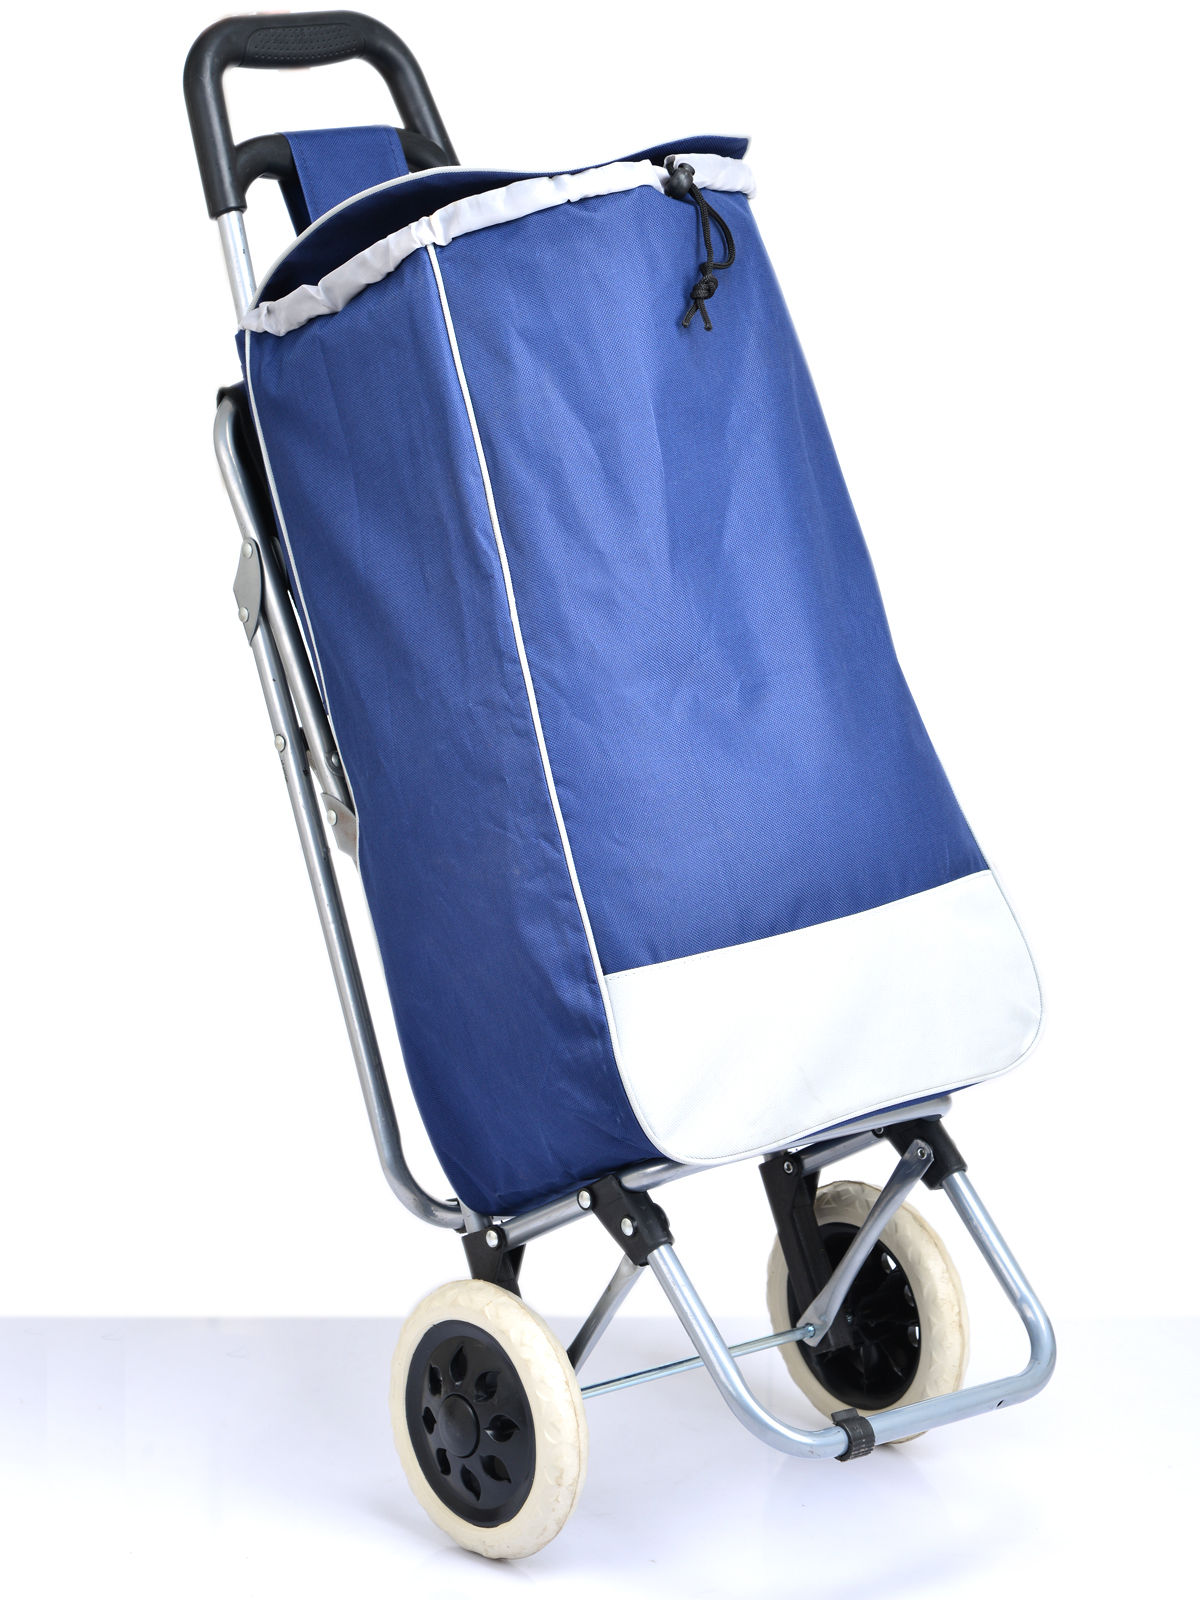 Buy Multi-Purpose Trolley Bag with Foldable Chair Online at Best Price in  India on Naaptol.com 0a6c492dc5